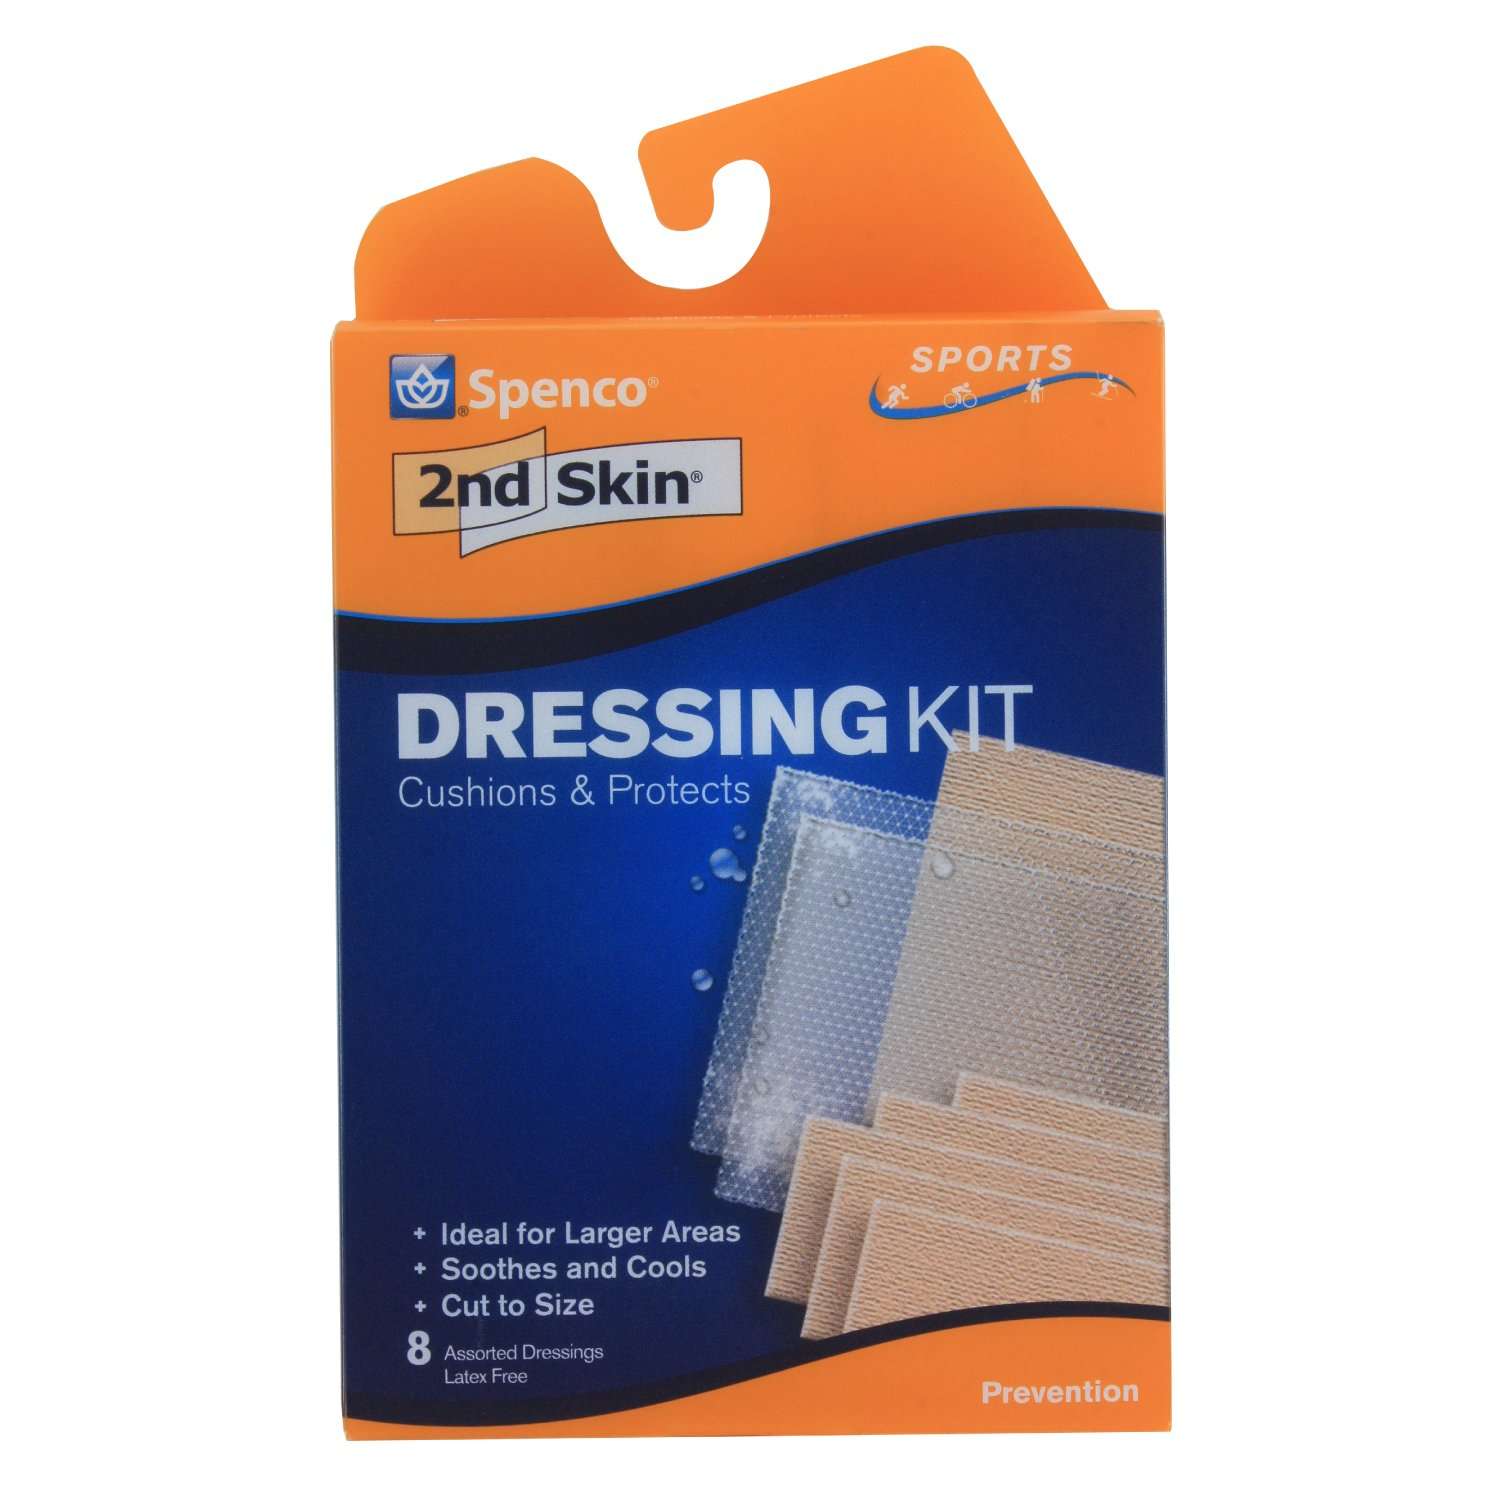 Spenco 2nd Skin Dressing Kit Bandages for Blister Protection, Sports, 8-Count